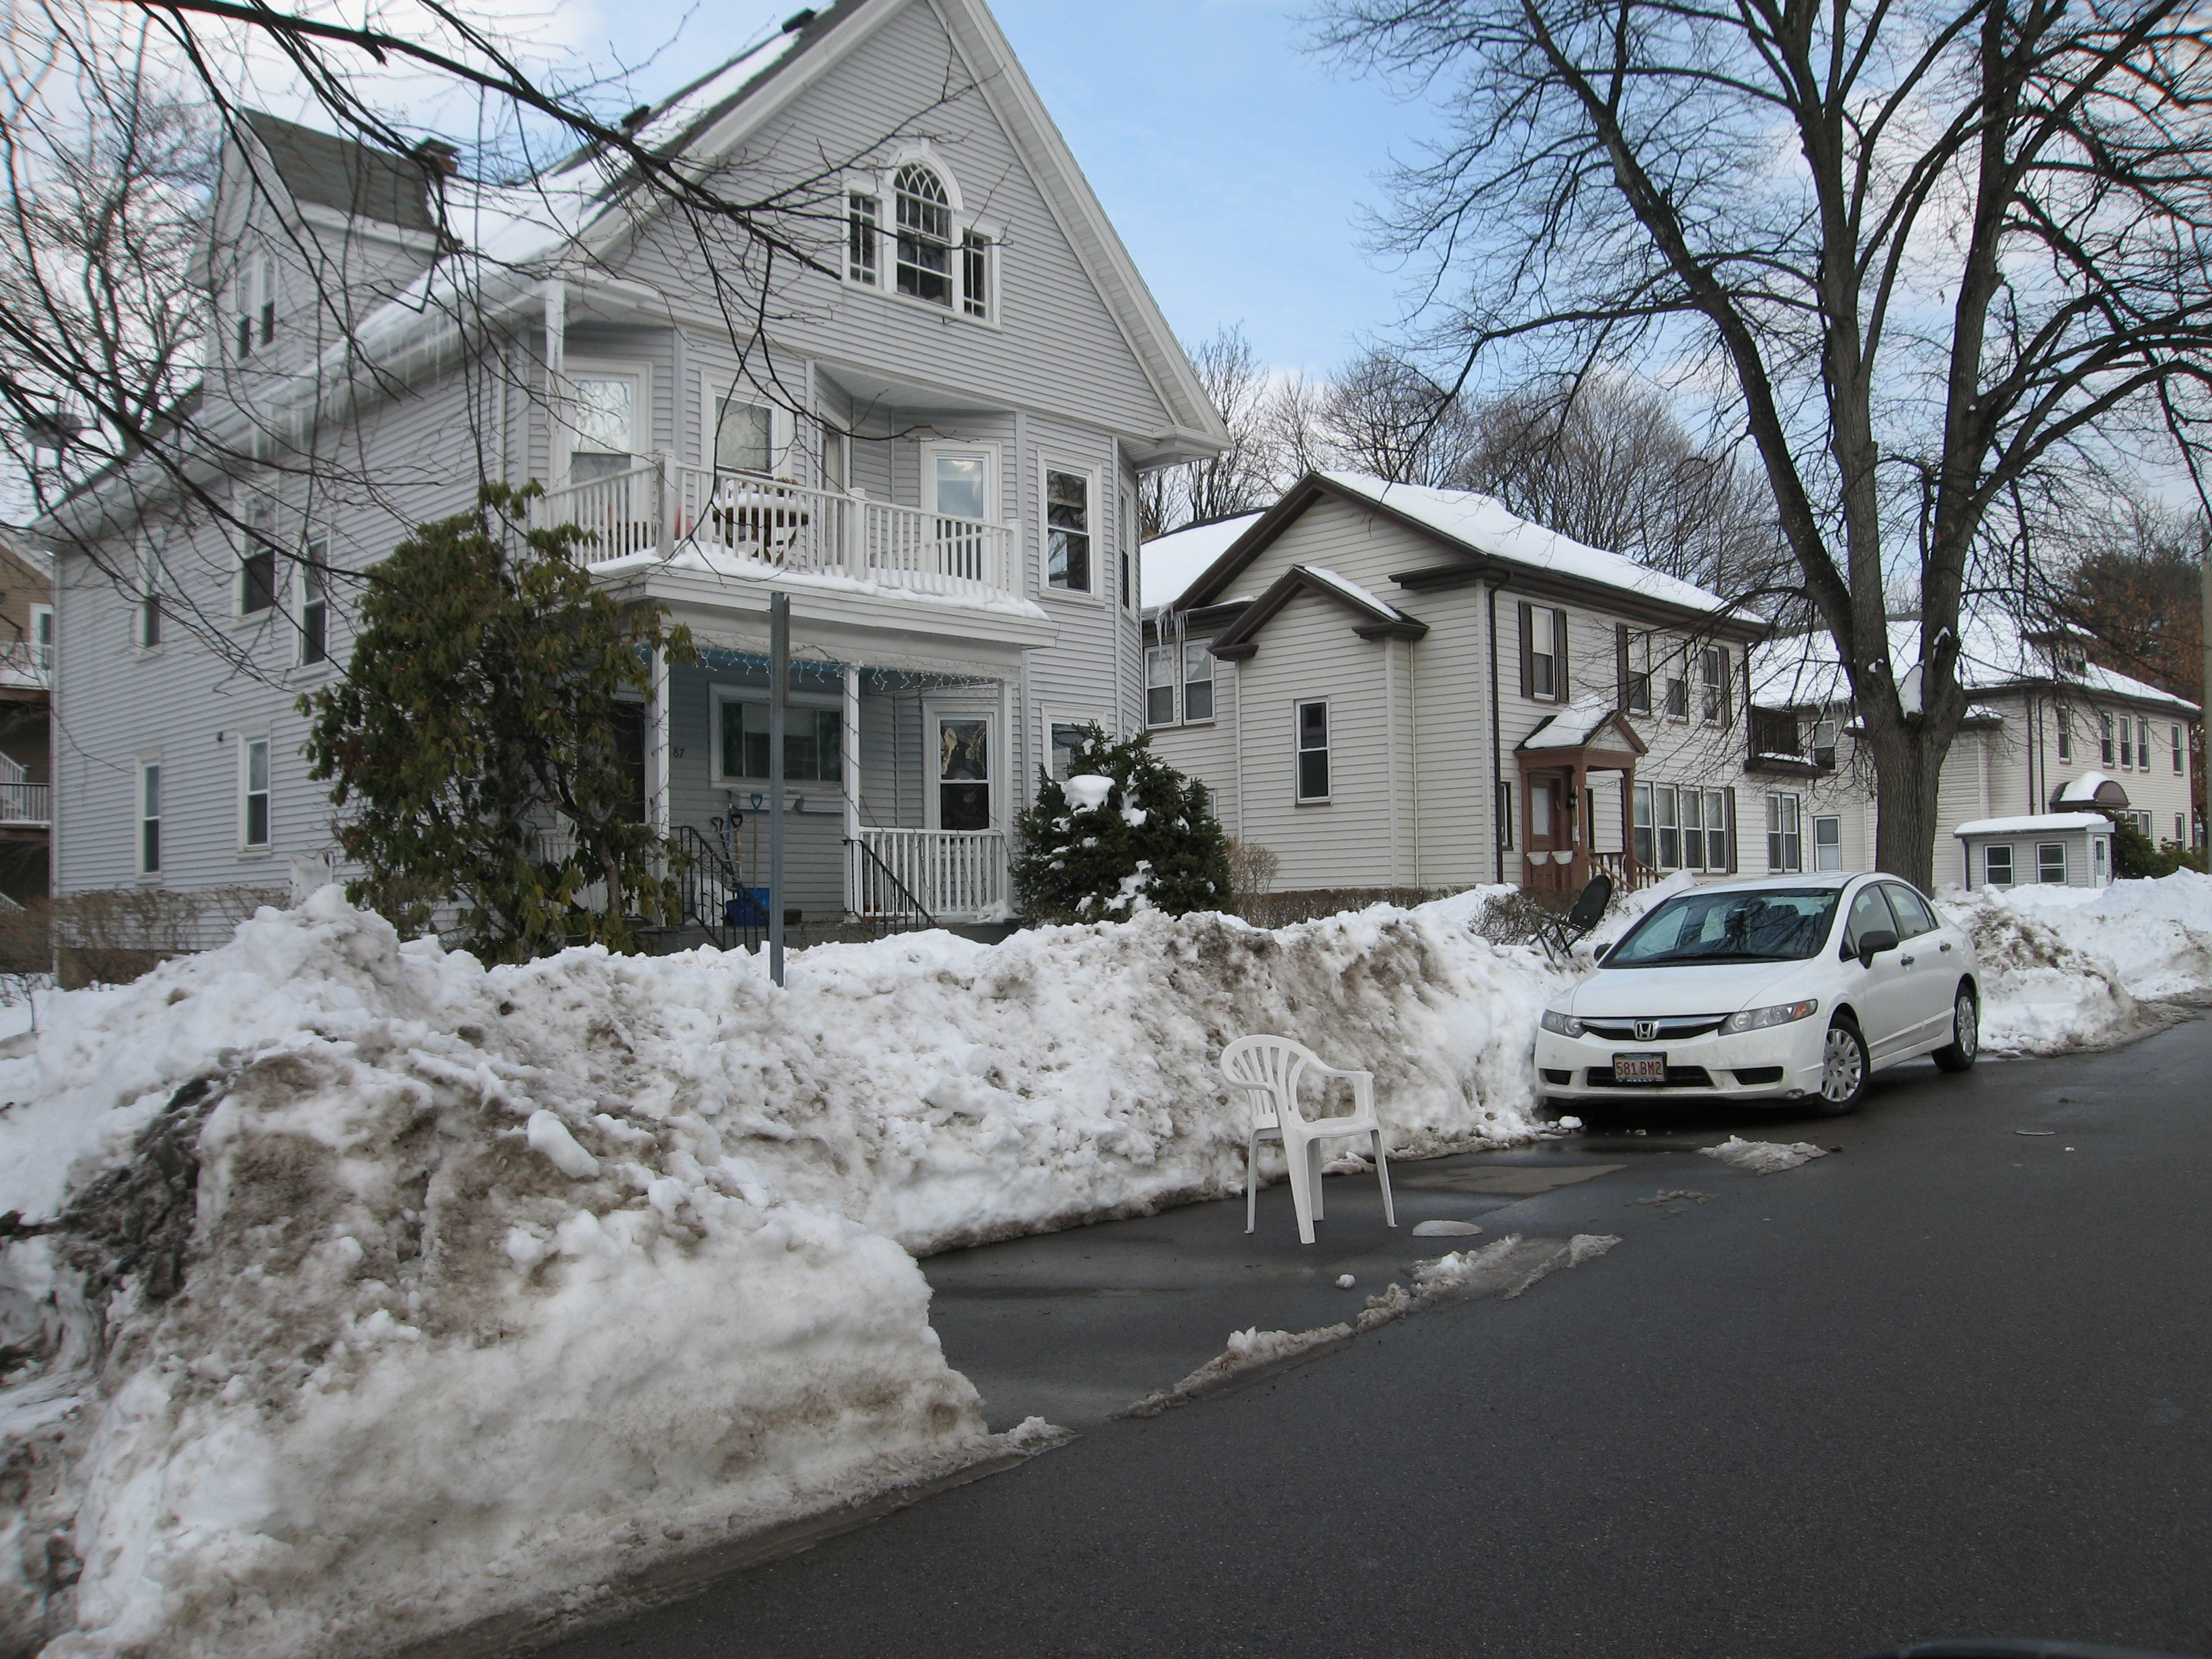 Photo: This is how you protect the parking spot you spent 3 hours shoveling out (Brighton, MA)